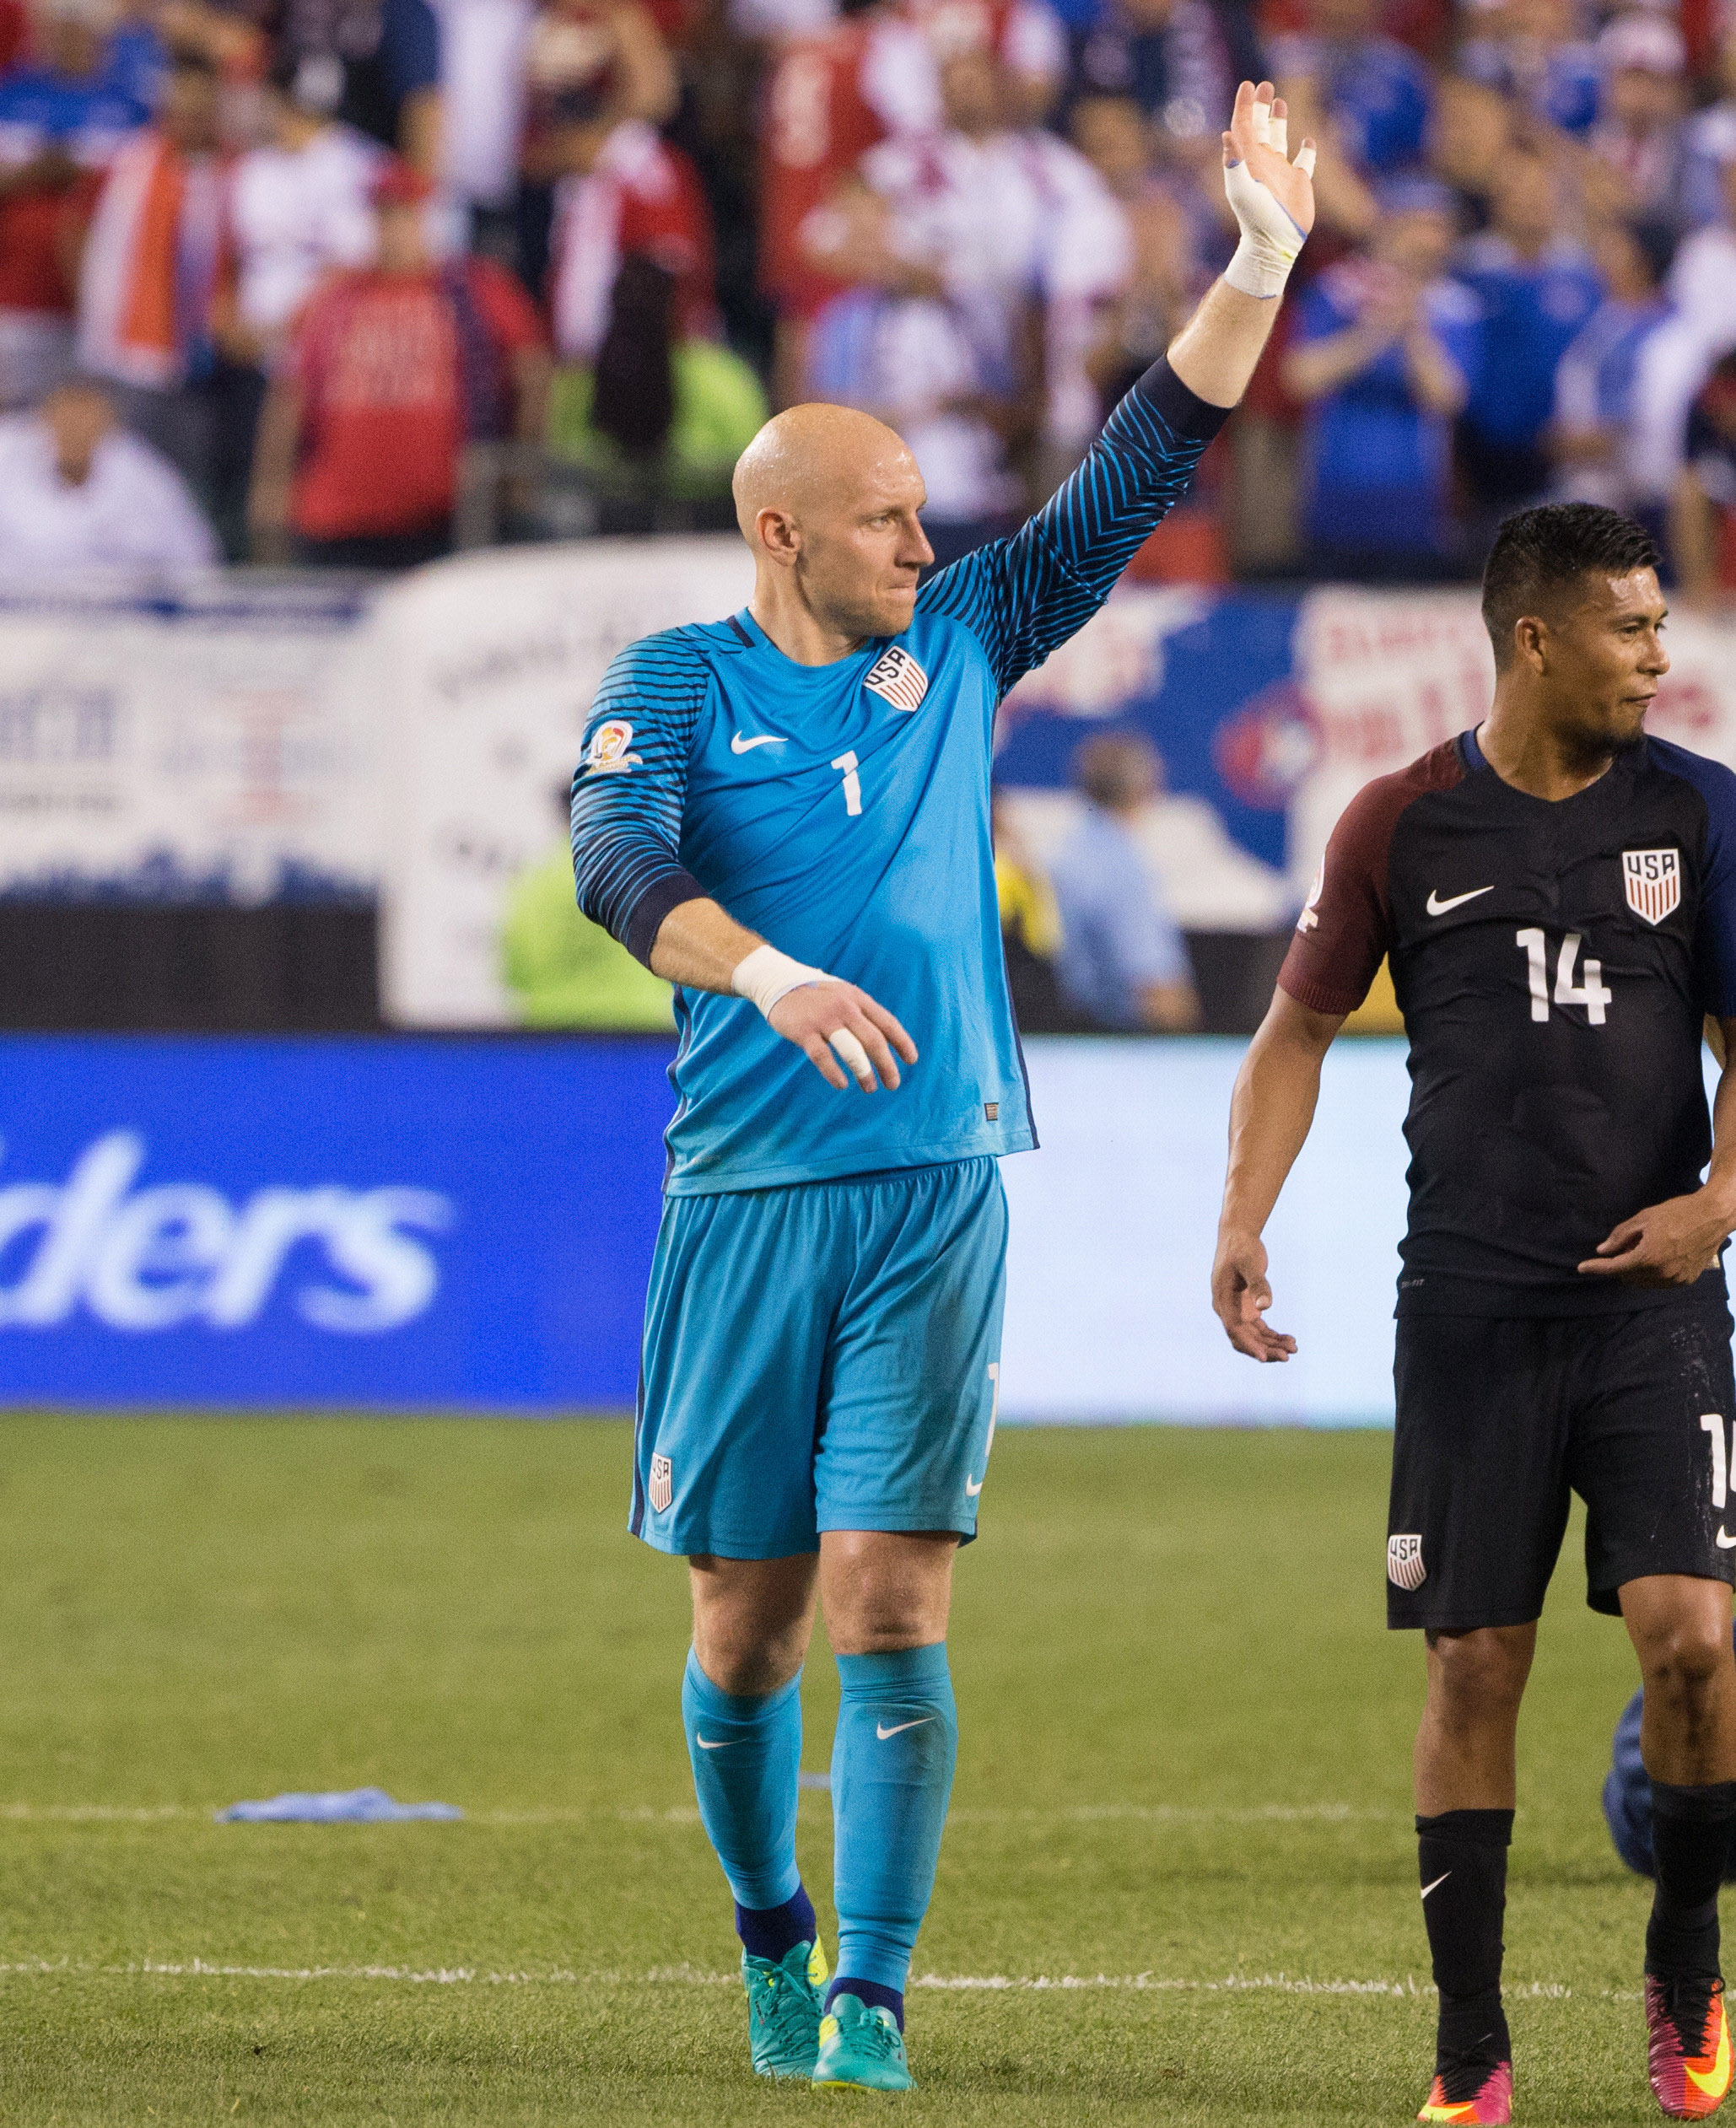 Two clean sheets in the Copa group stage! Well done, Mr. Guzan!